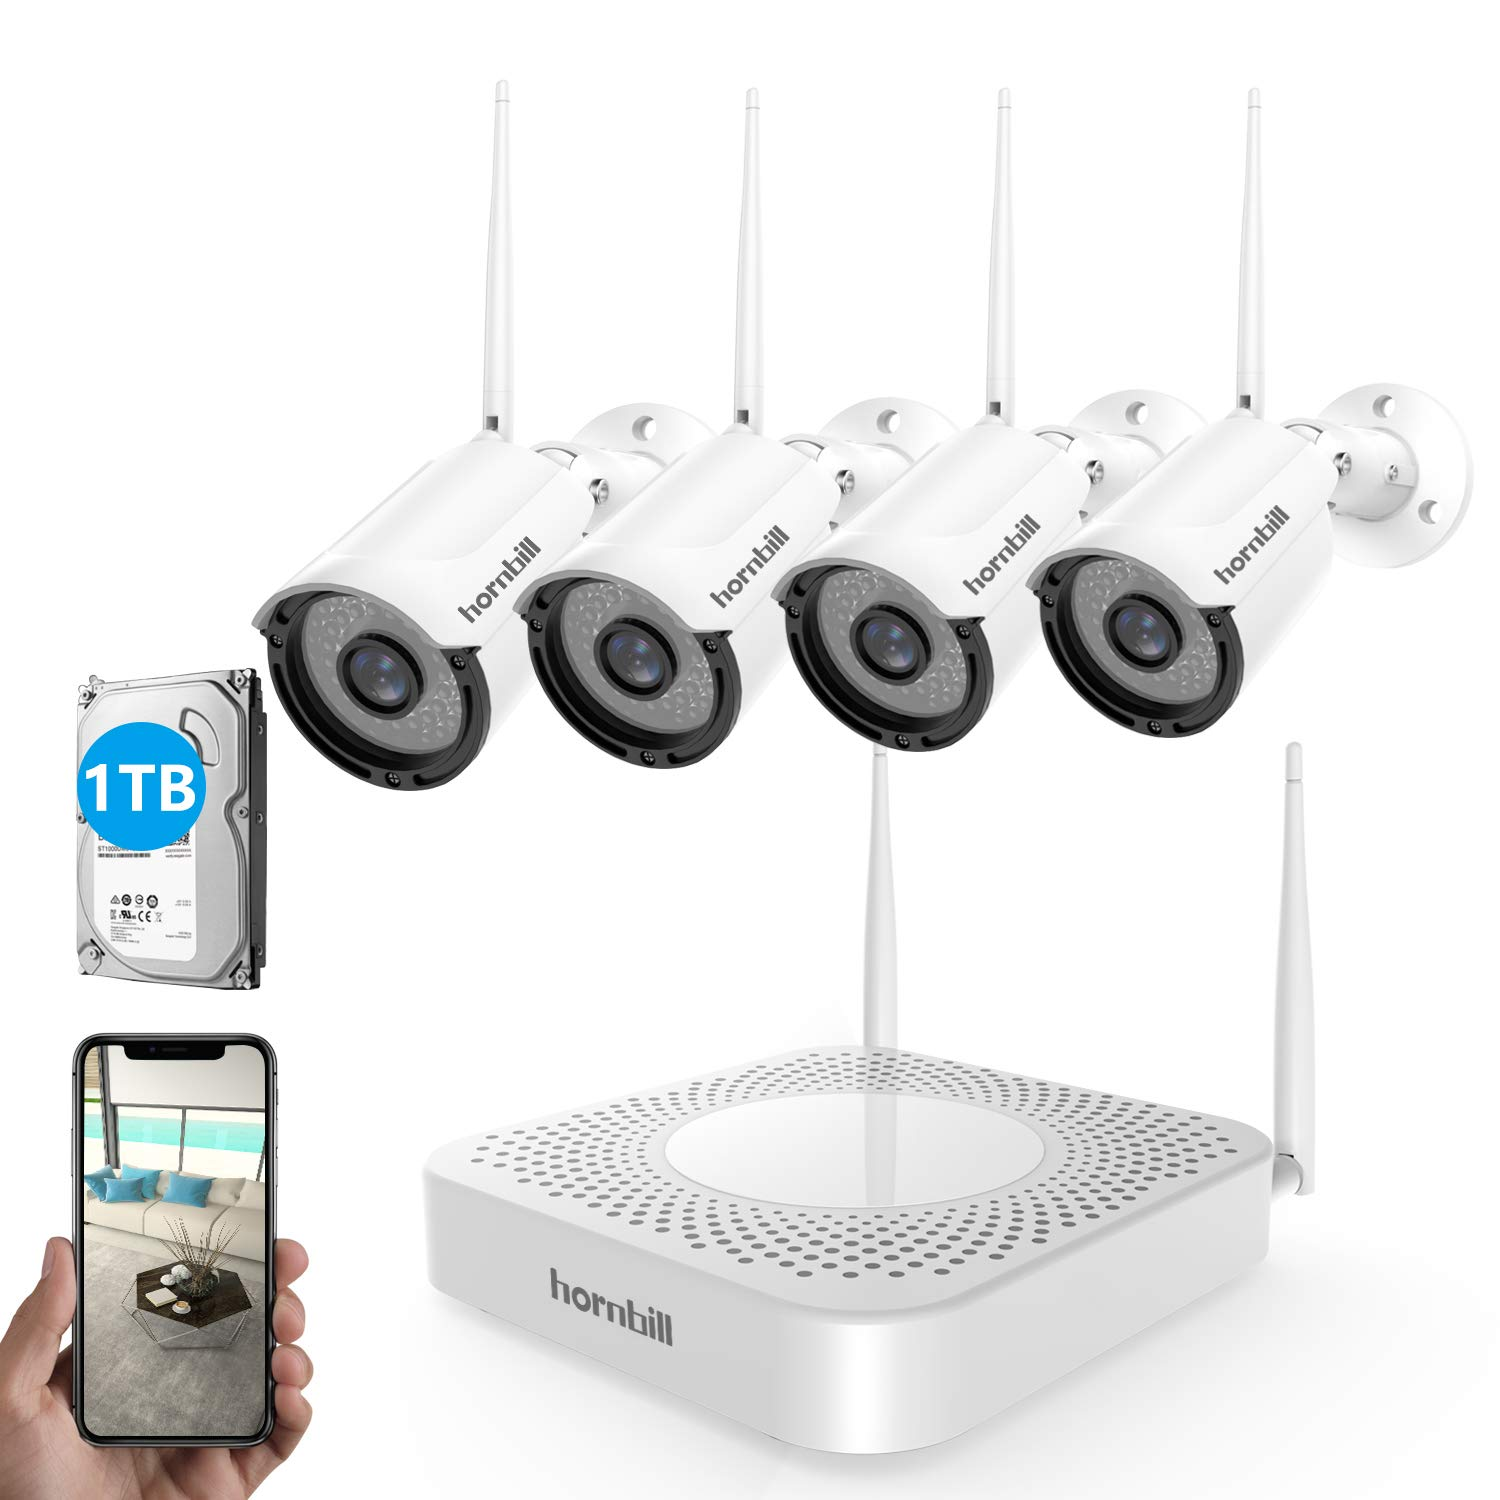 Wireless Security Camera System,Hornbill 1080P 8CH Wireless NVR Security System with 4PCS 1.3MP IP66 Waterproof Security Camera with Night Vision,Easy Remote View, Plug and Play with 1TB Hard Drive by hornbill